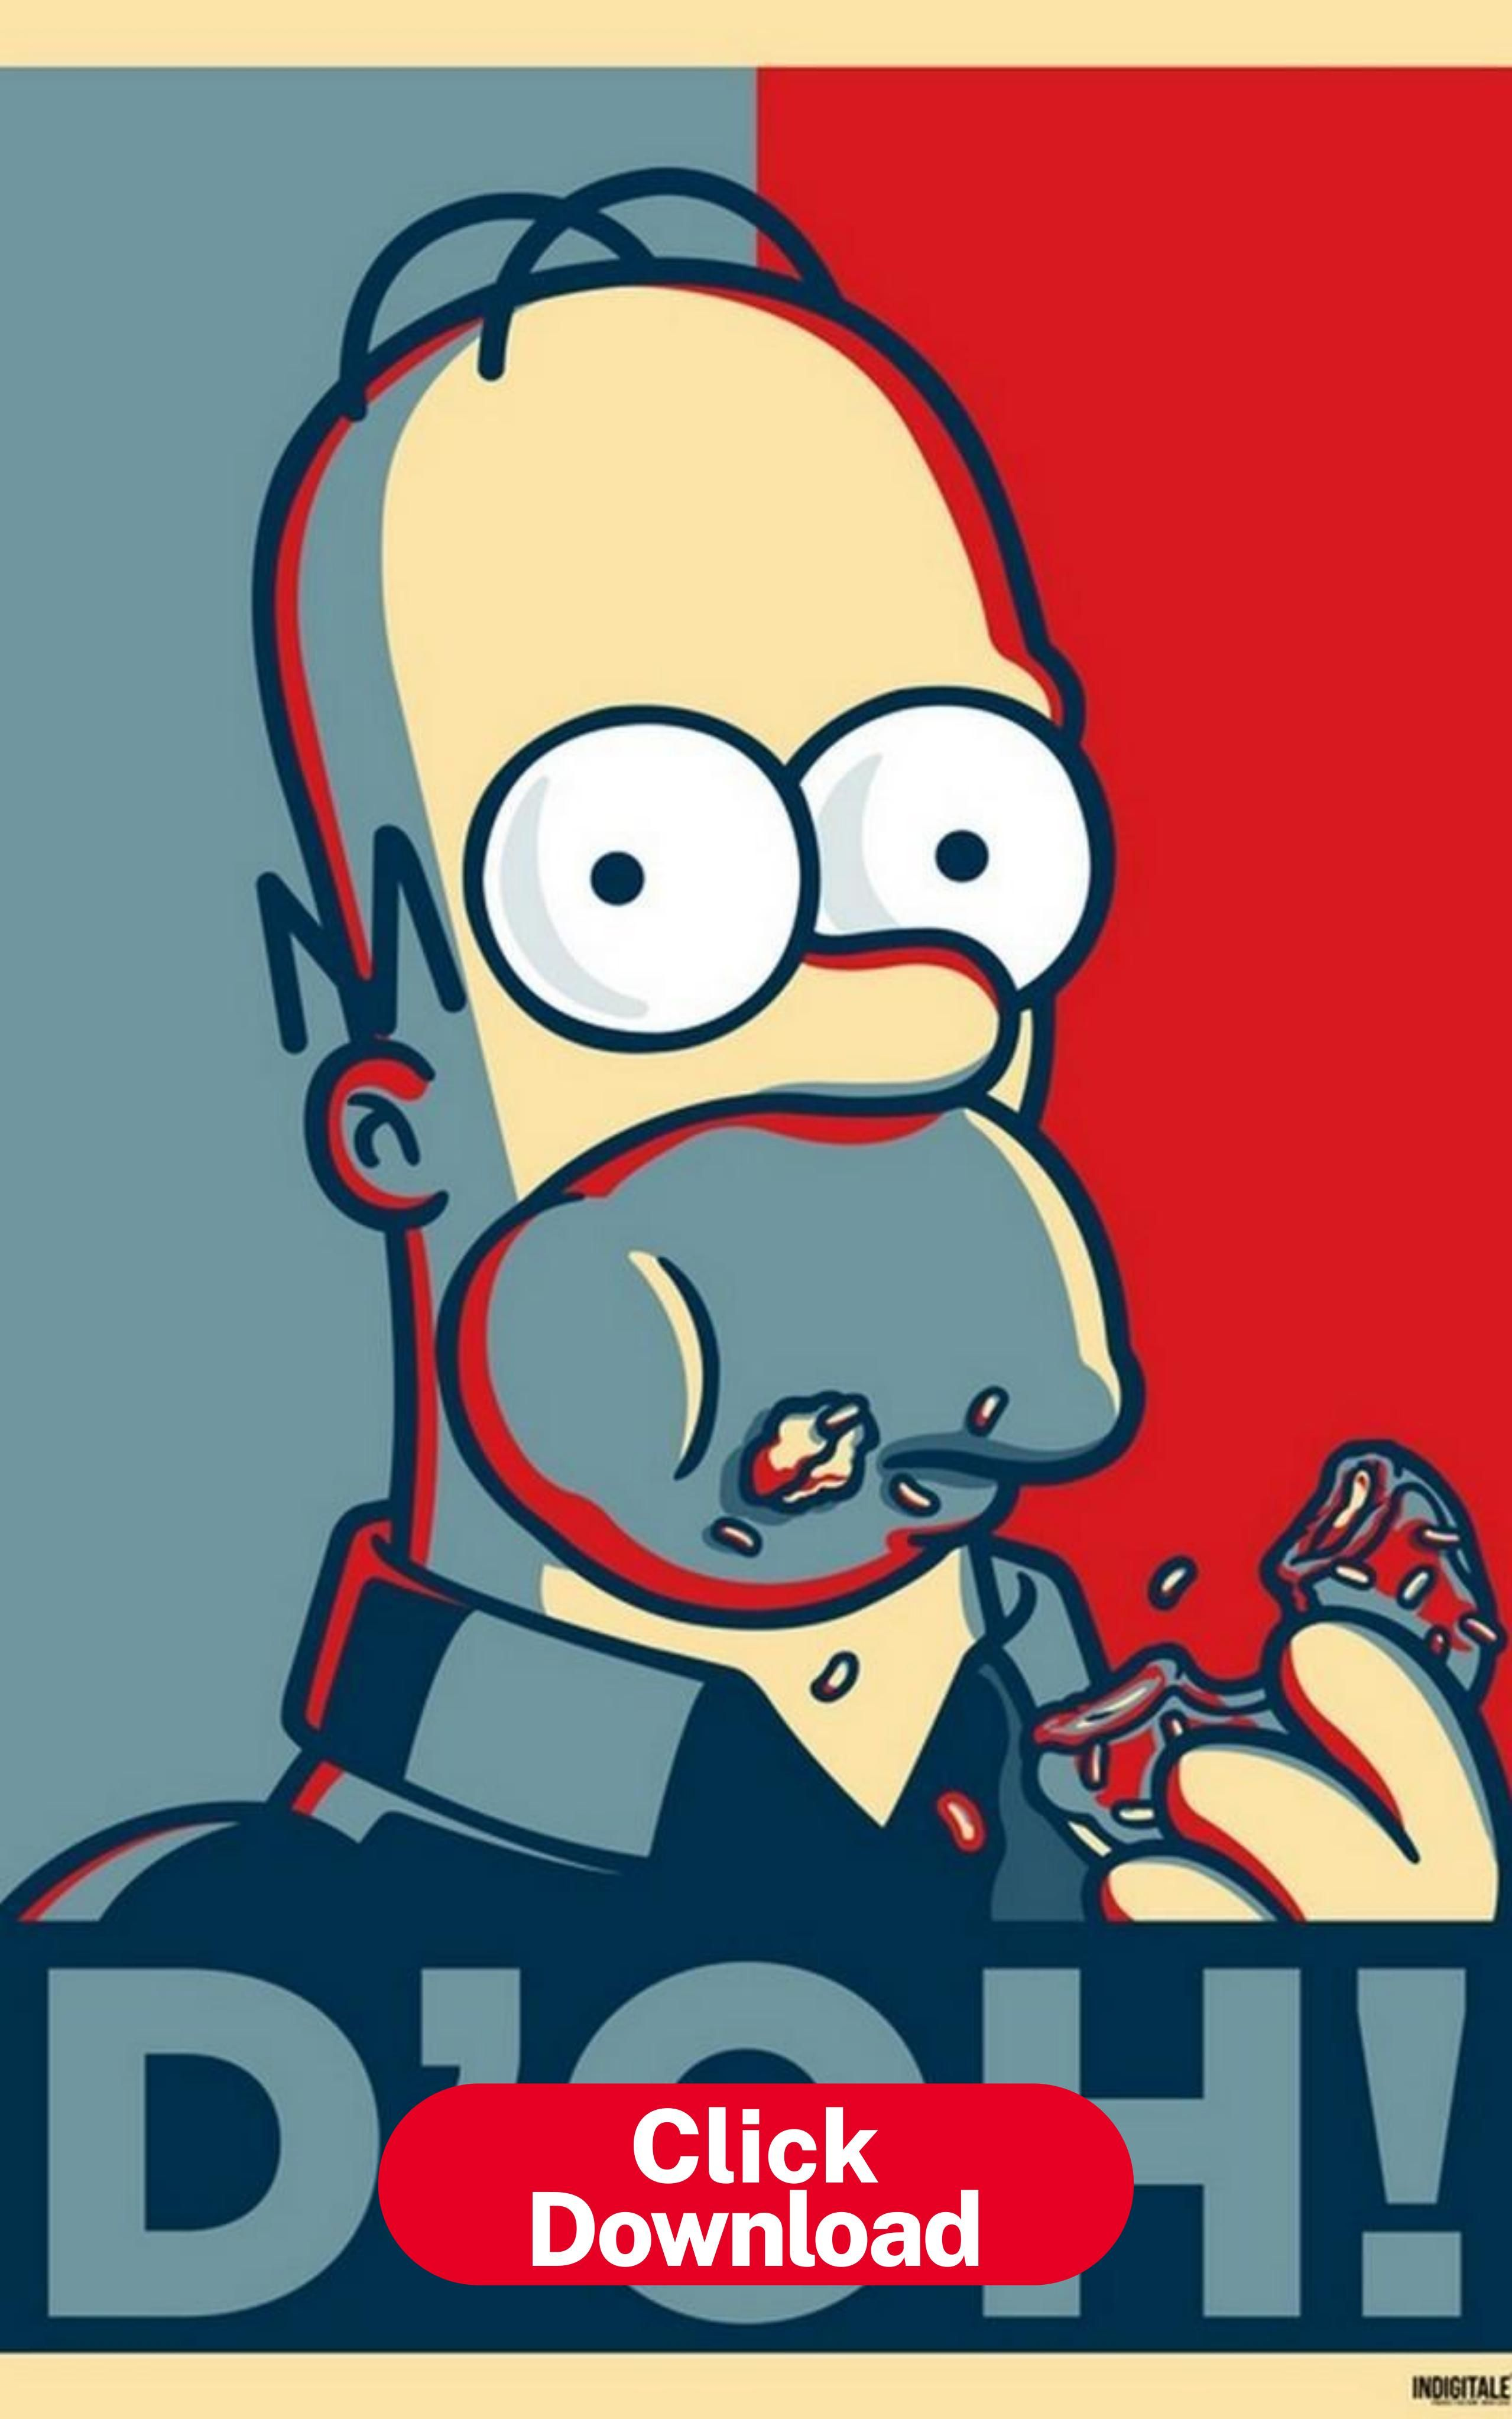 Homer Wallpaper Hd For Android Apk Download In 2020 Android Apk Android Homer